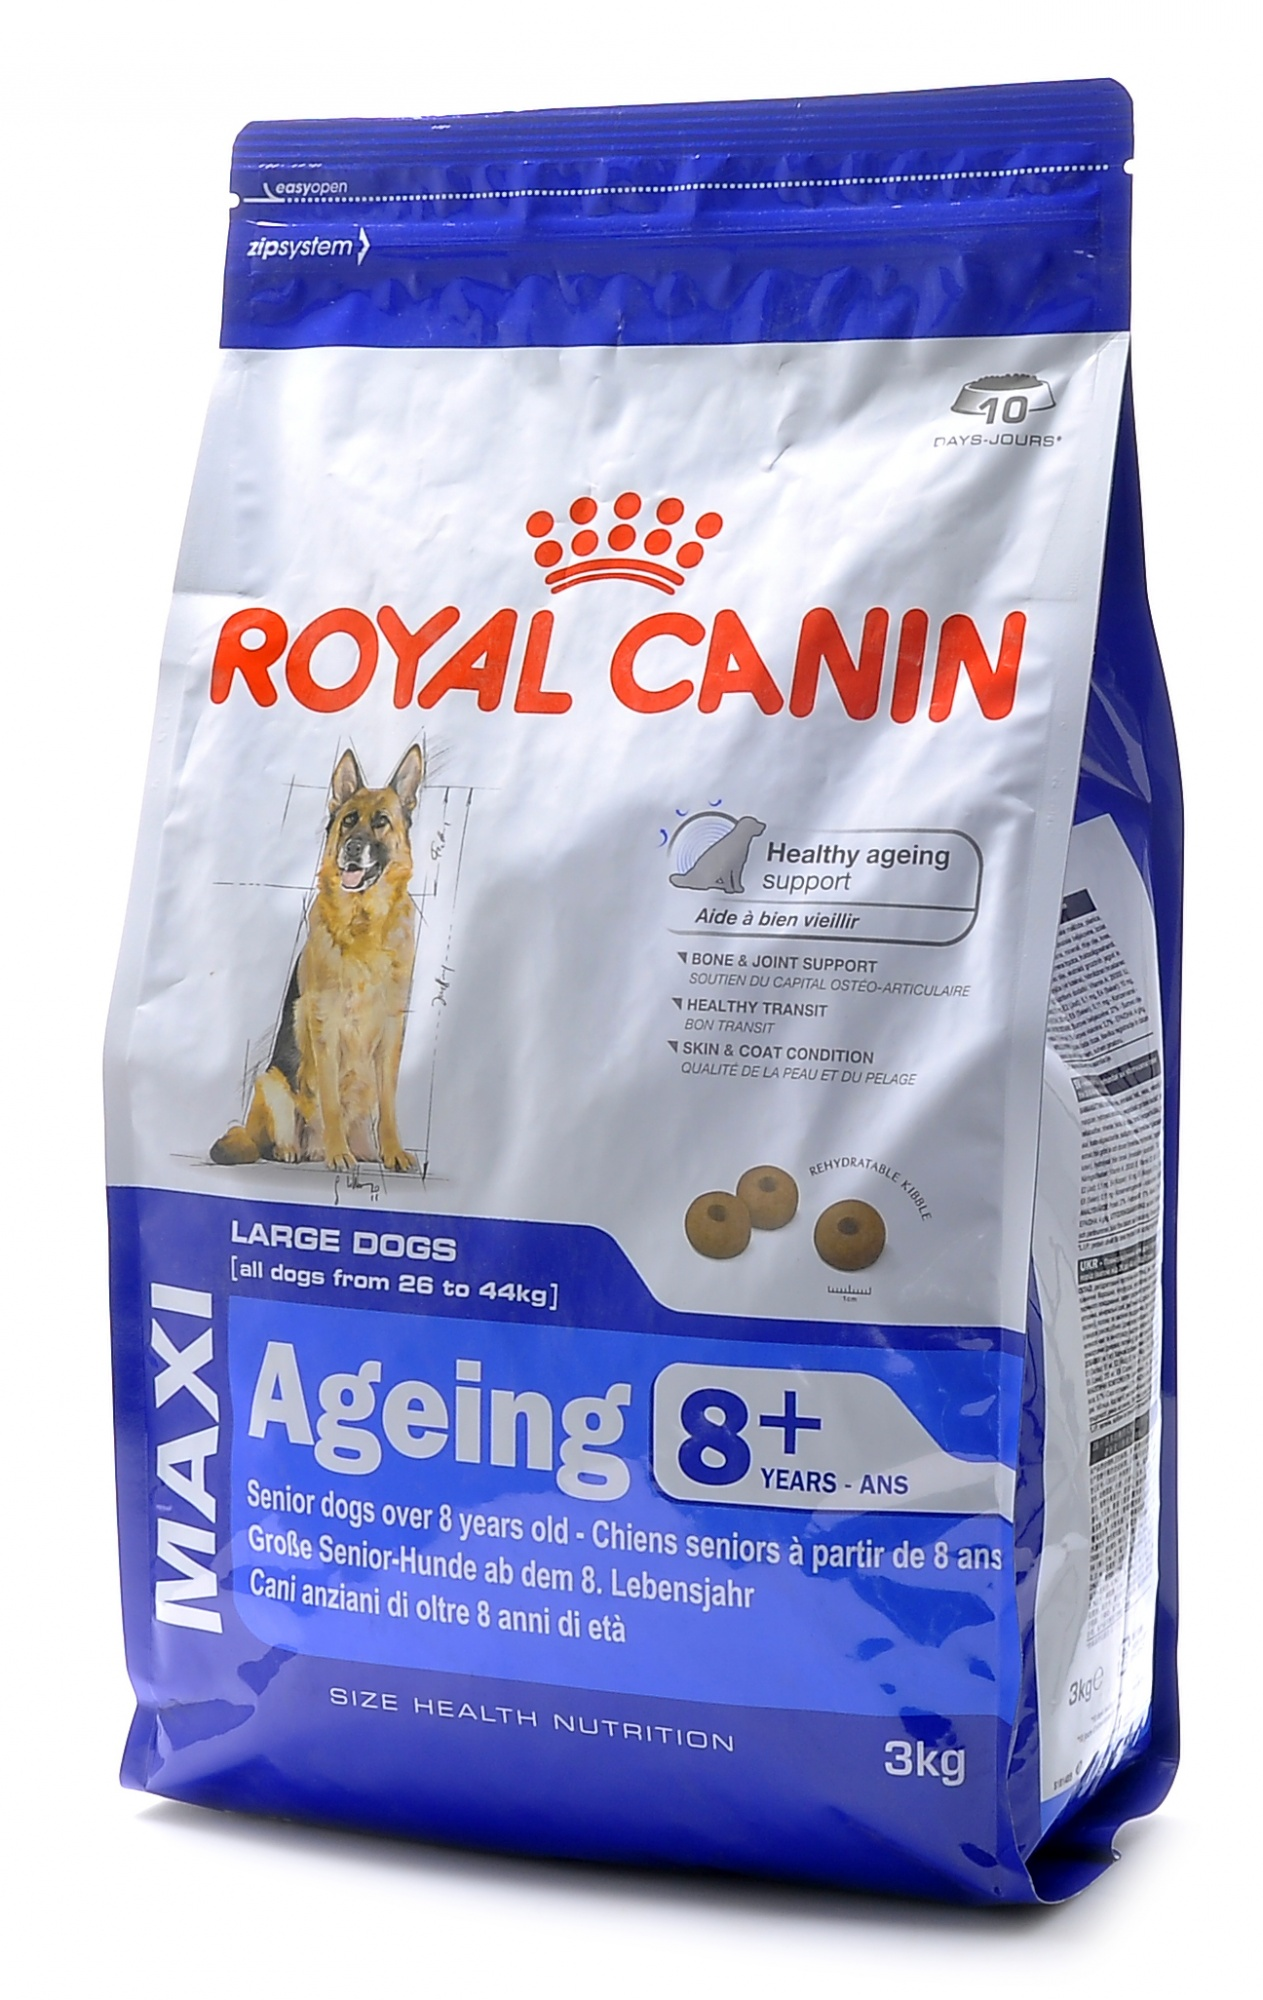 картинка Royal Canin. Для пожилых собак крупных пород старше 8 лет  от зоомагазина Кандибобер